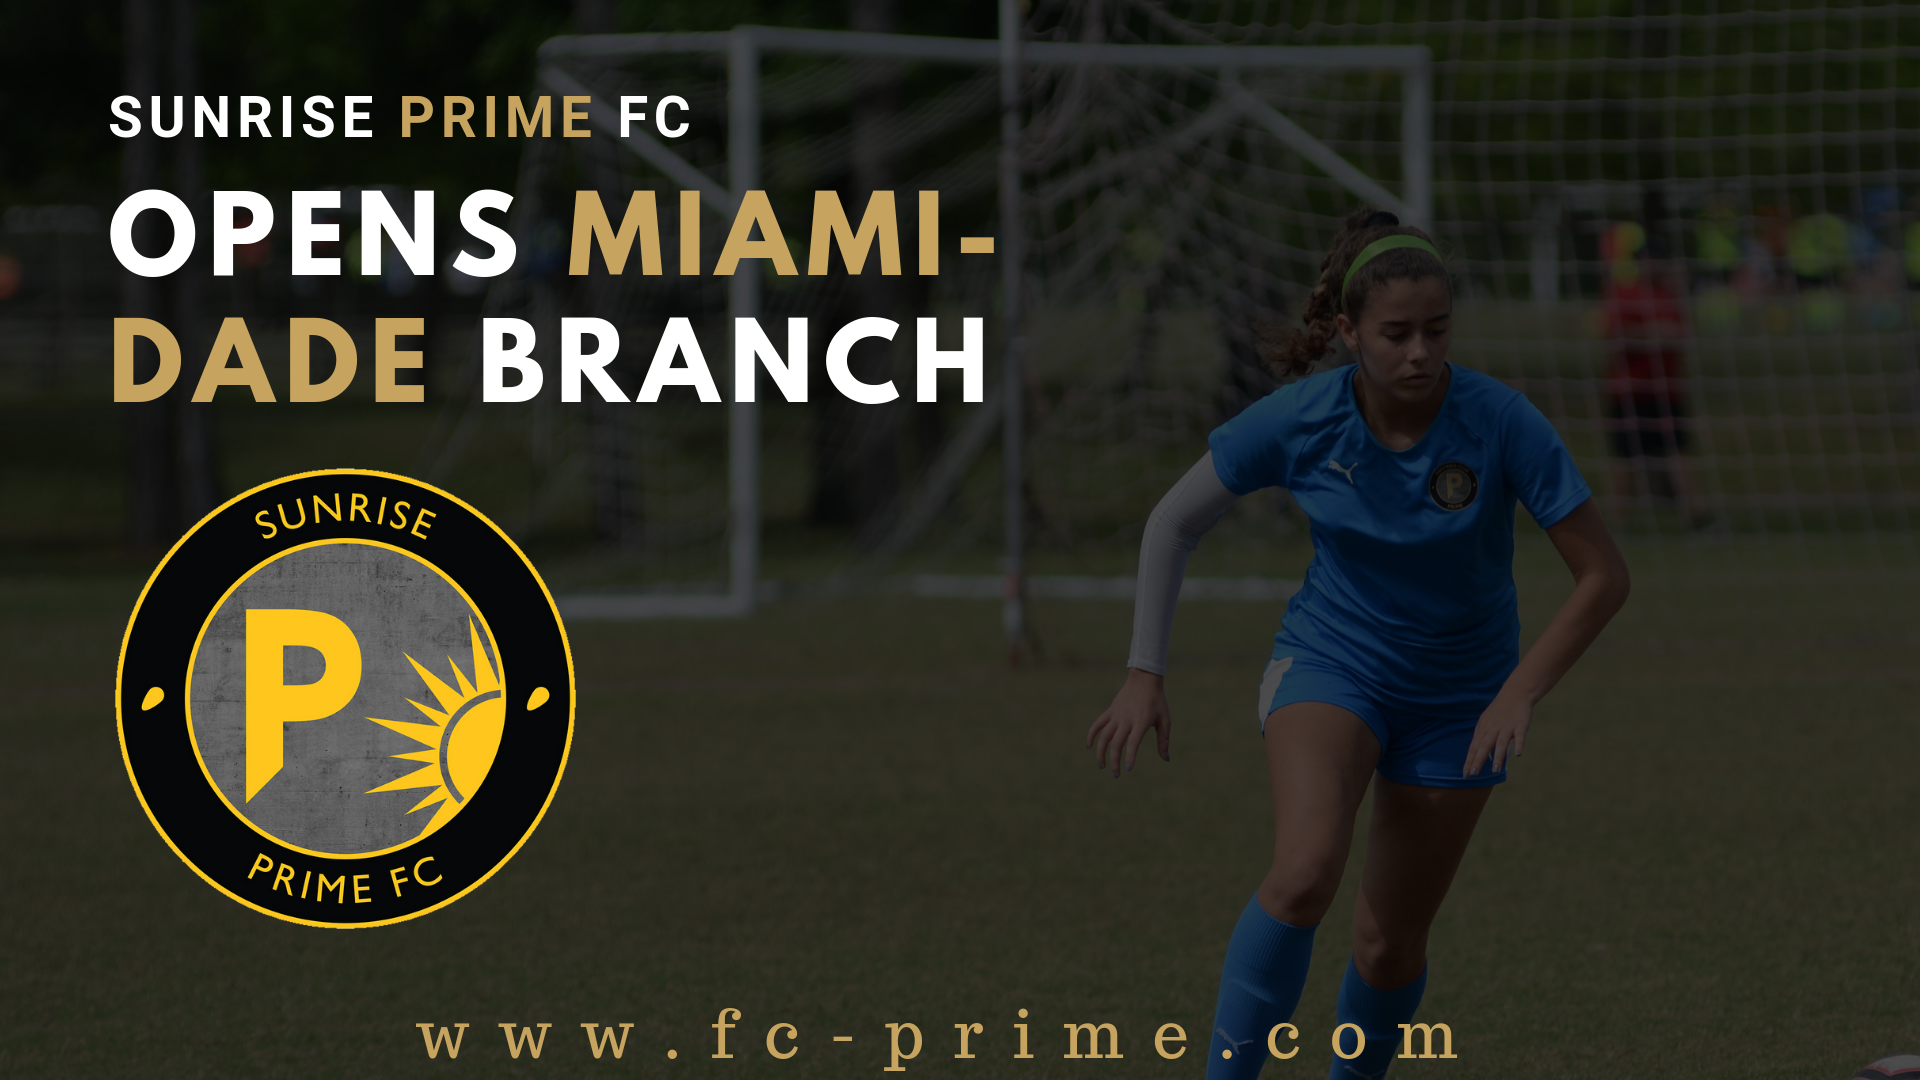 Sunrise Prime FC Announces The Opening Of Miami-Dade based branch.